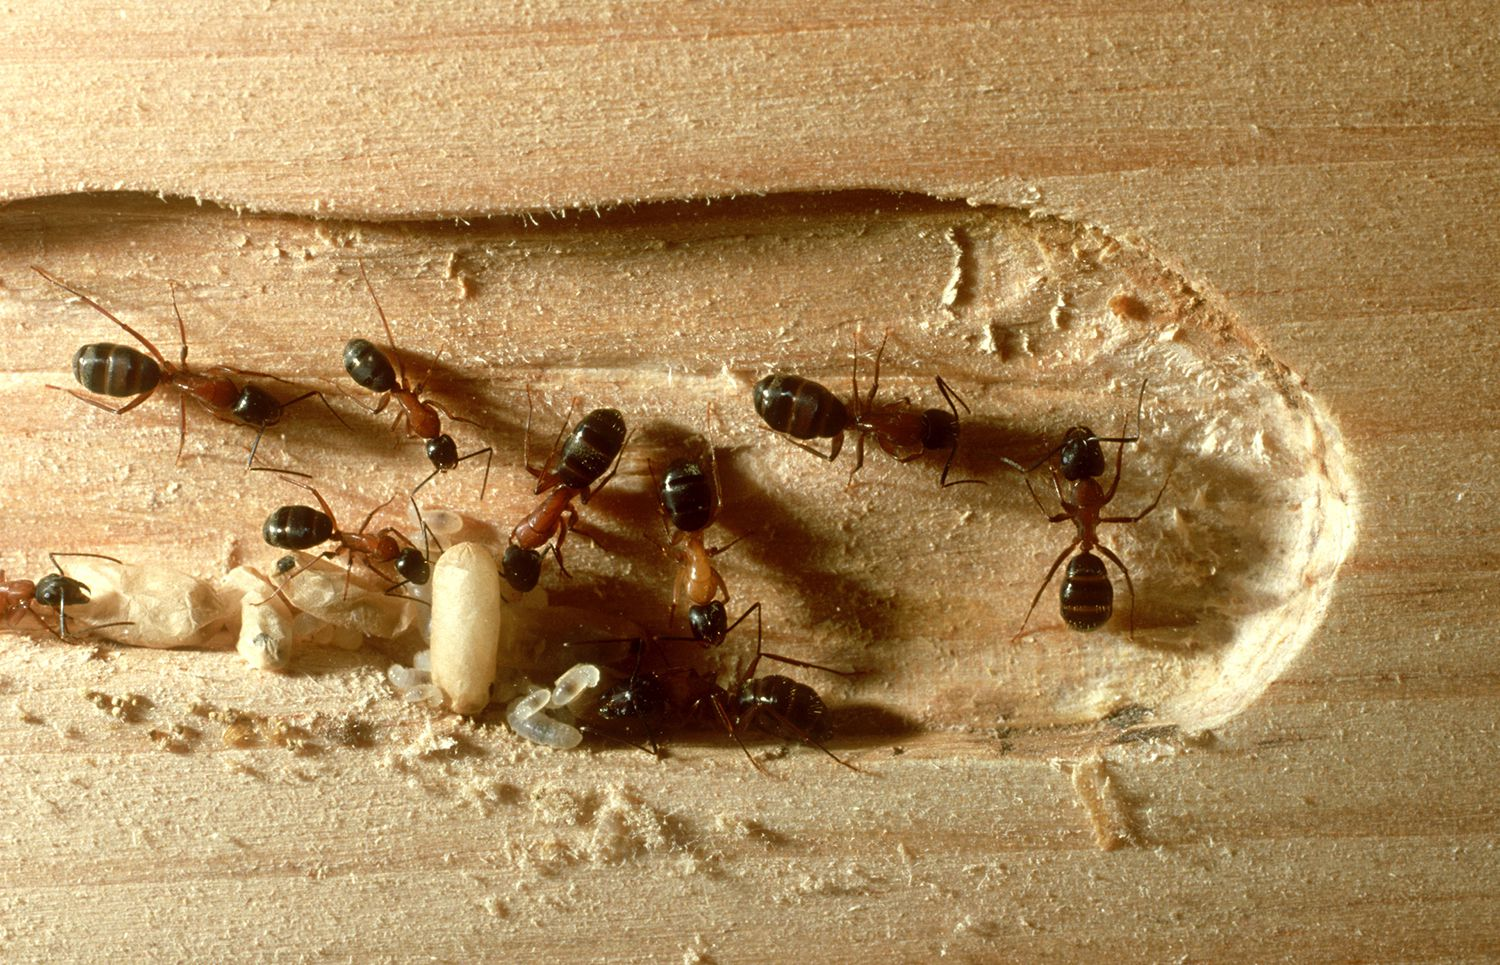 Habits And Traits Of Carpenter Ants